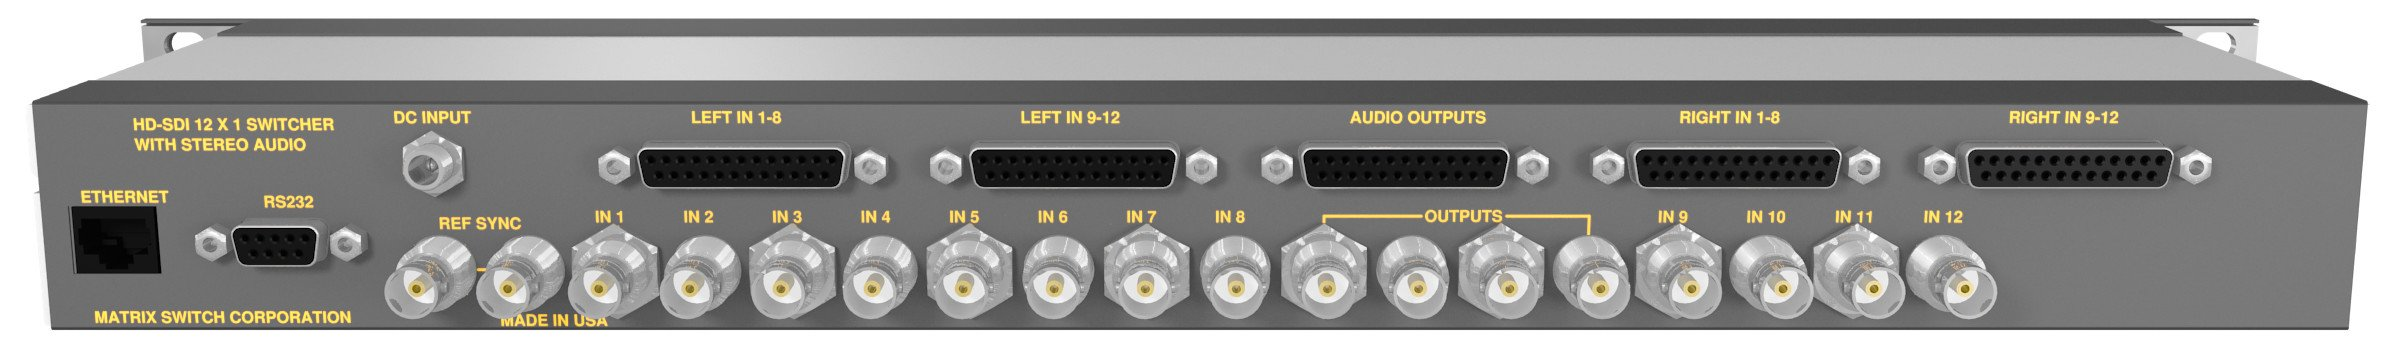 12in/1out 3G-SDI Switcher